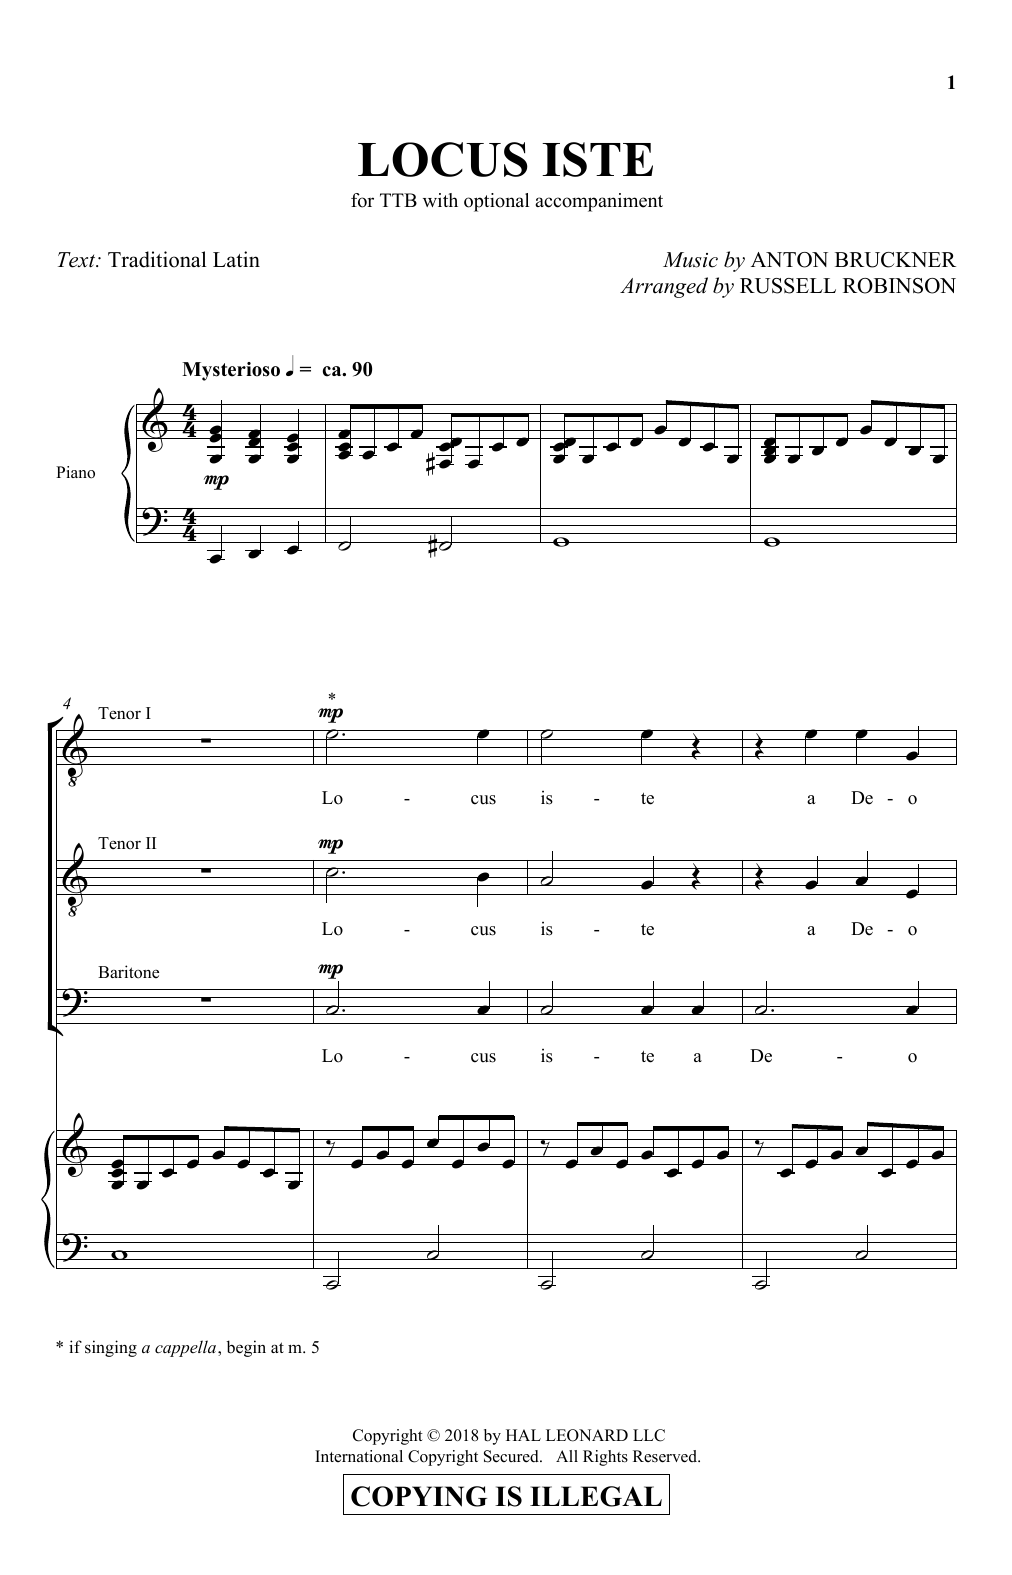 Anton Bruckner Locus Iste (arr. Russell Robinson) sheet music notes and chords. Download Printable PDF.